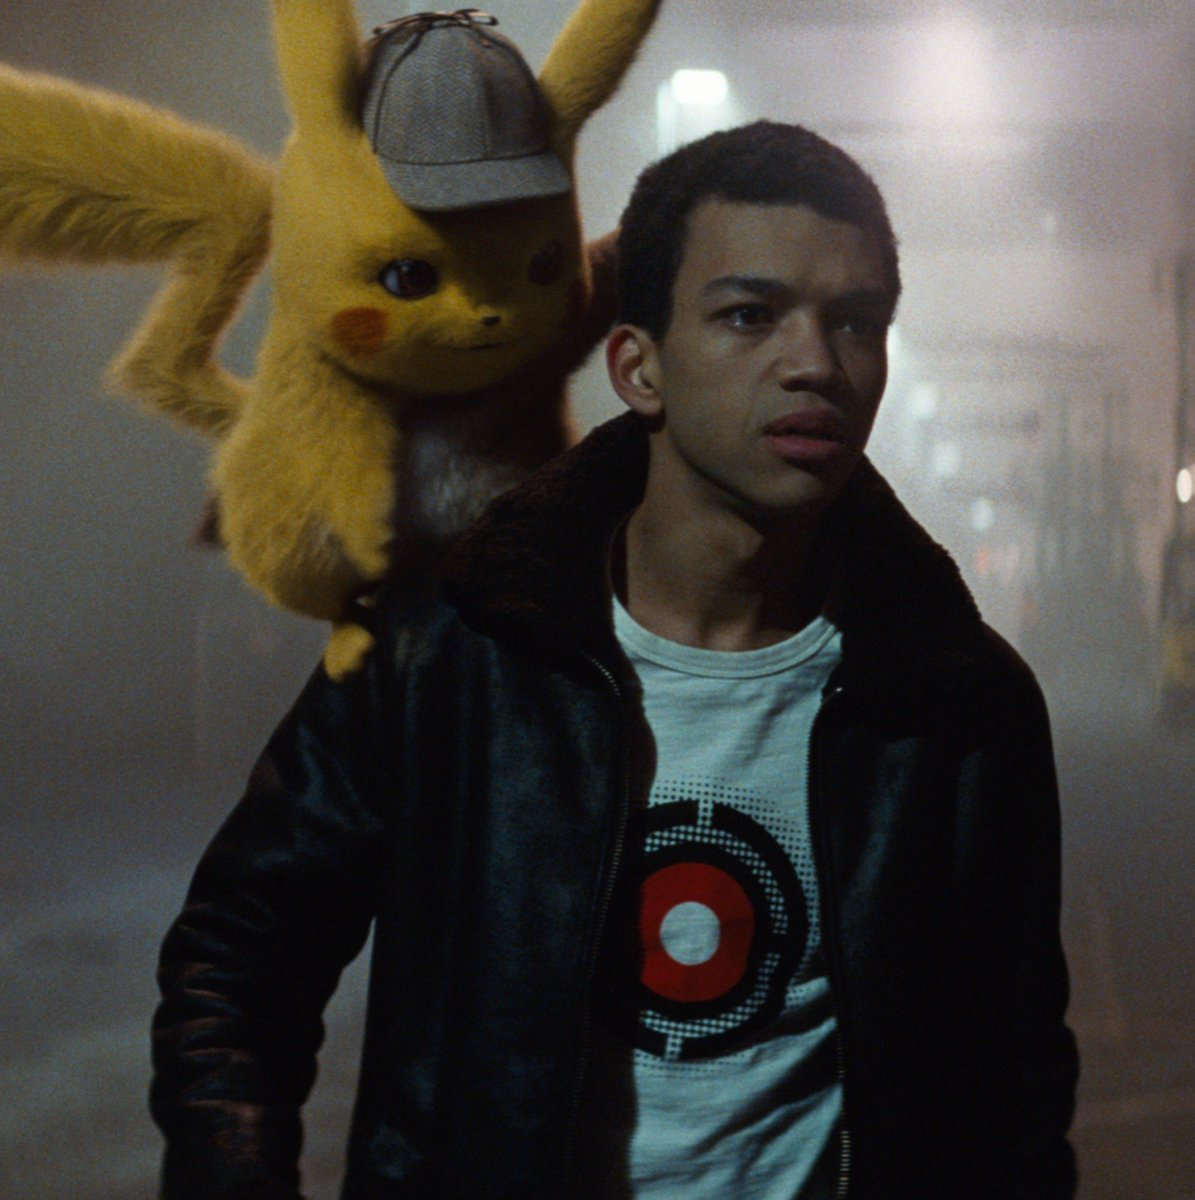 Partner up! #DetectivePikachu, hits theaters May 10.